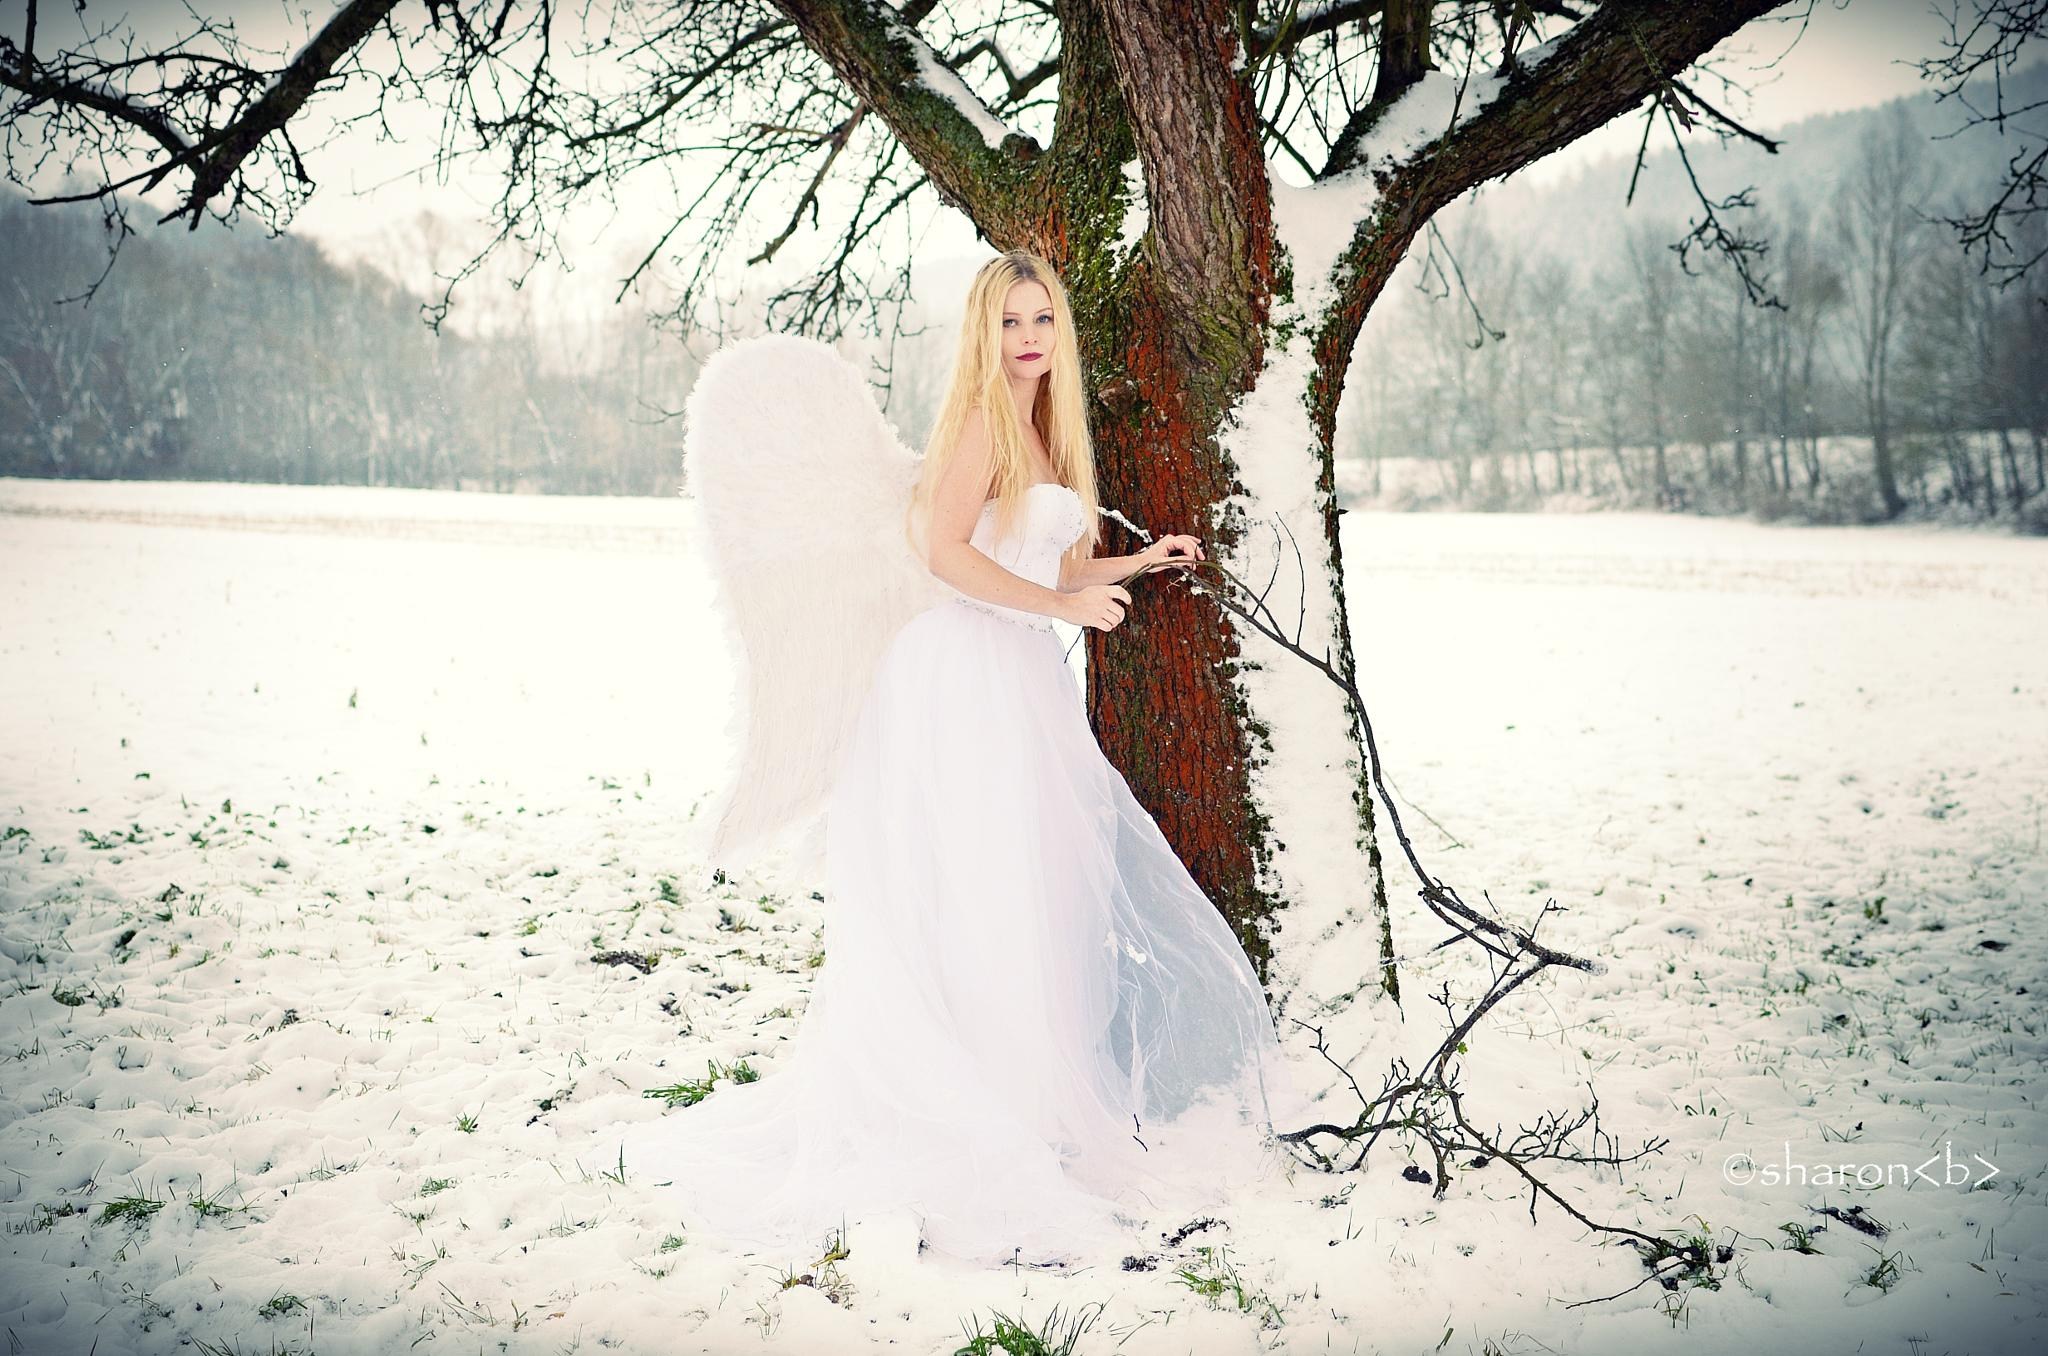 The White Angel by sharonbphotography